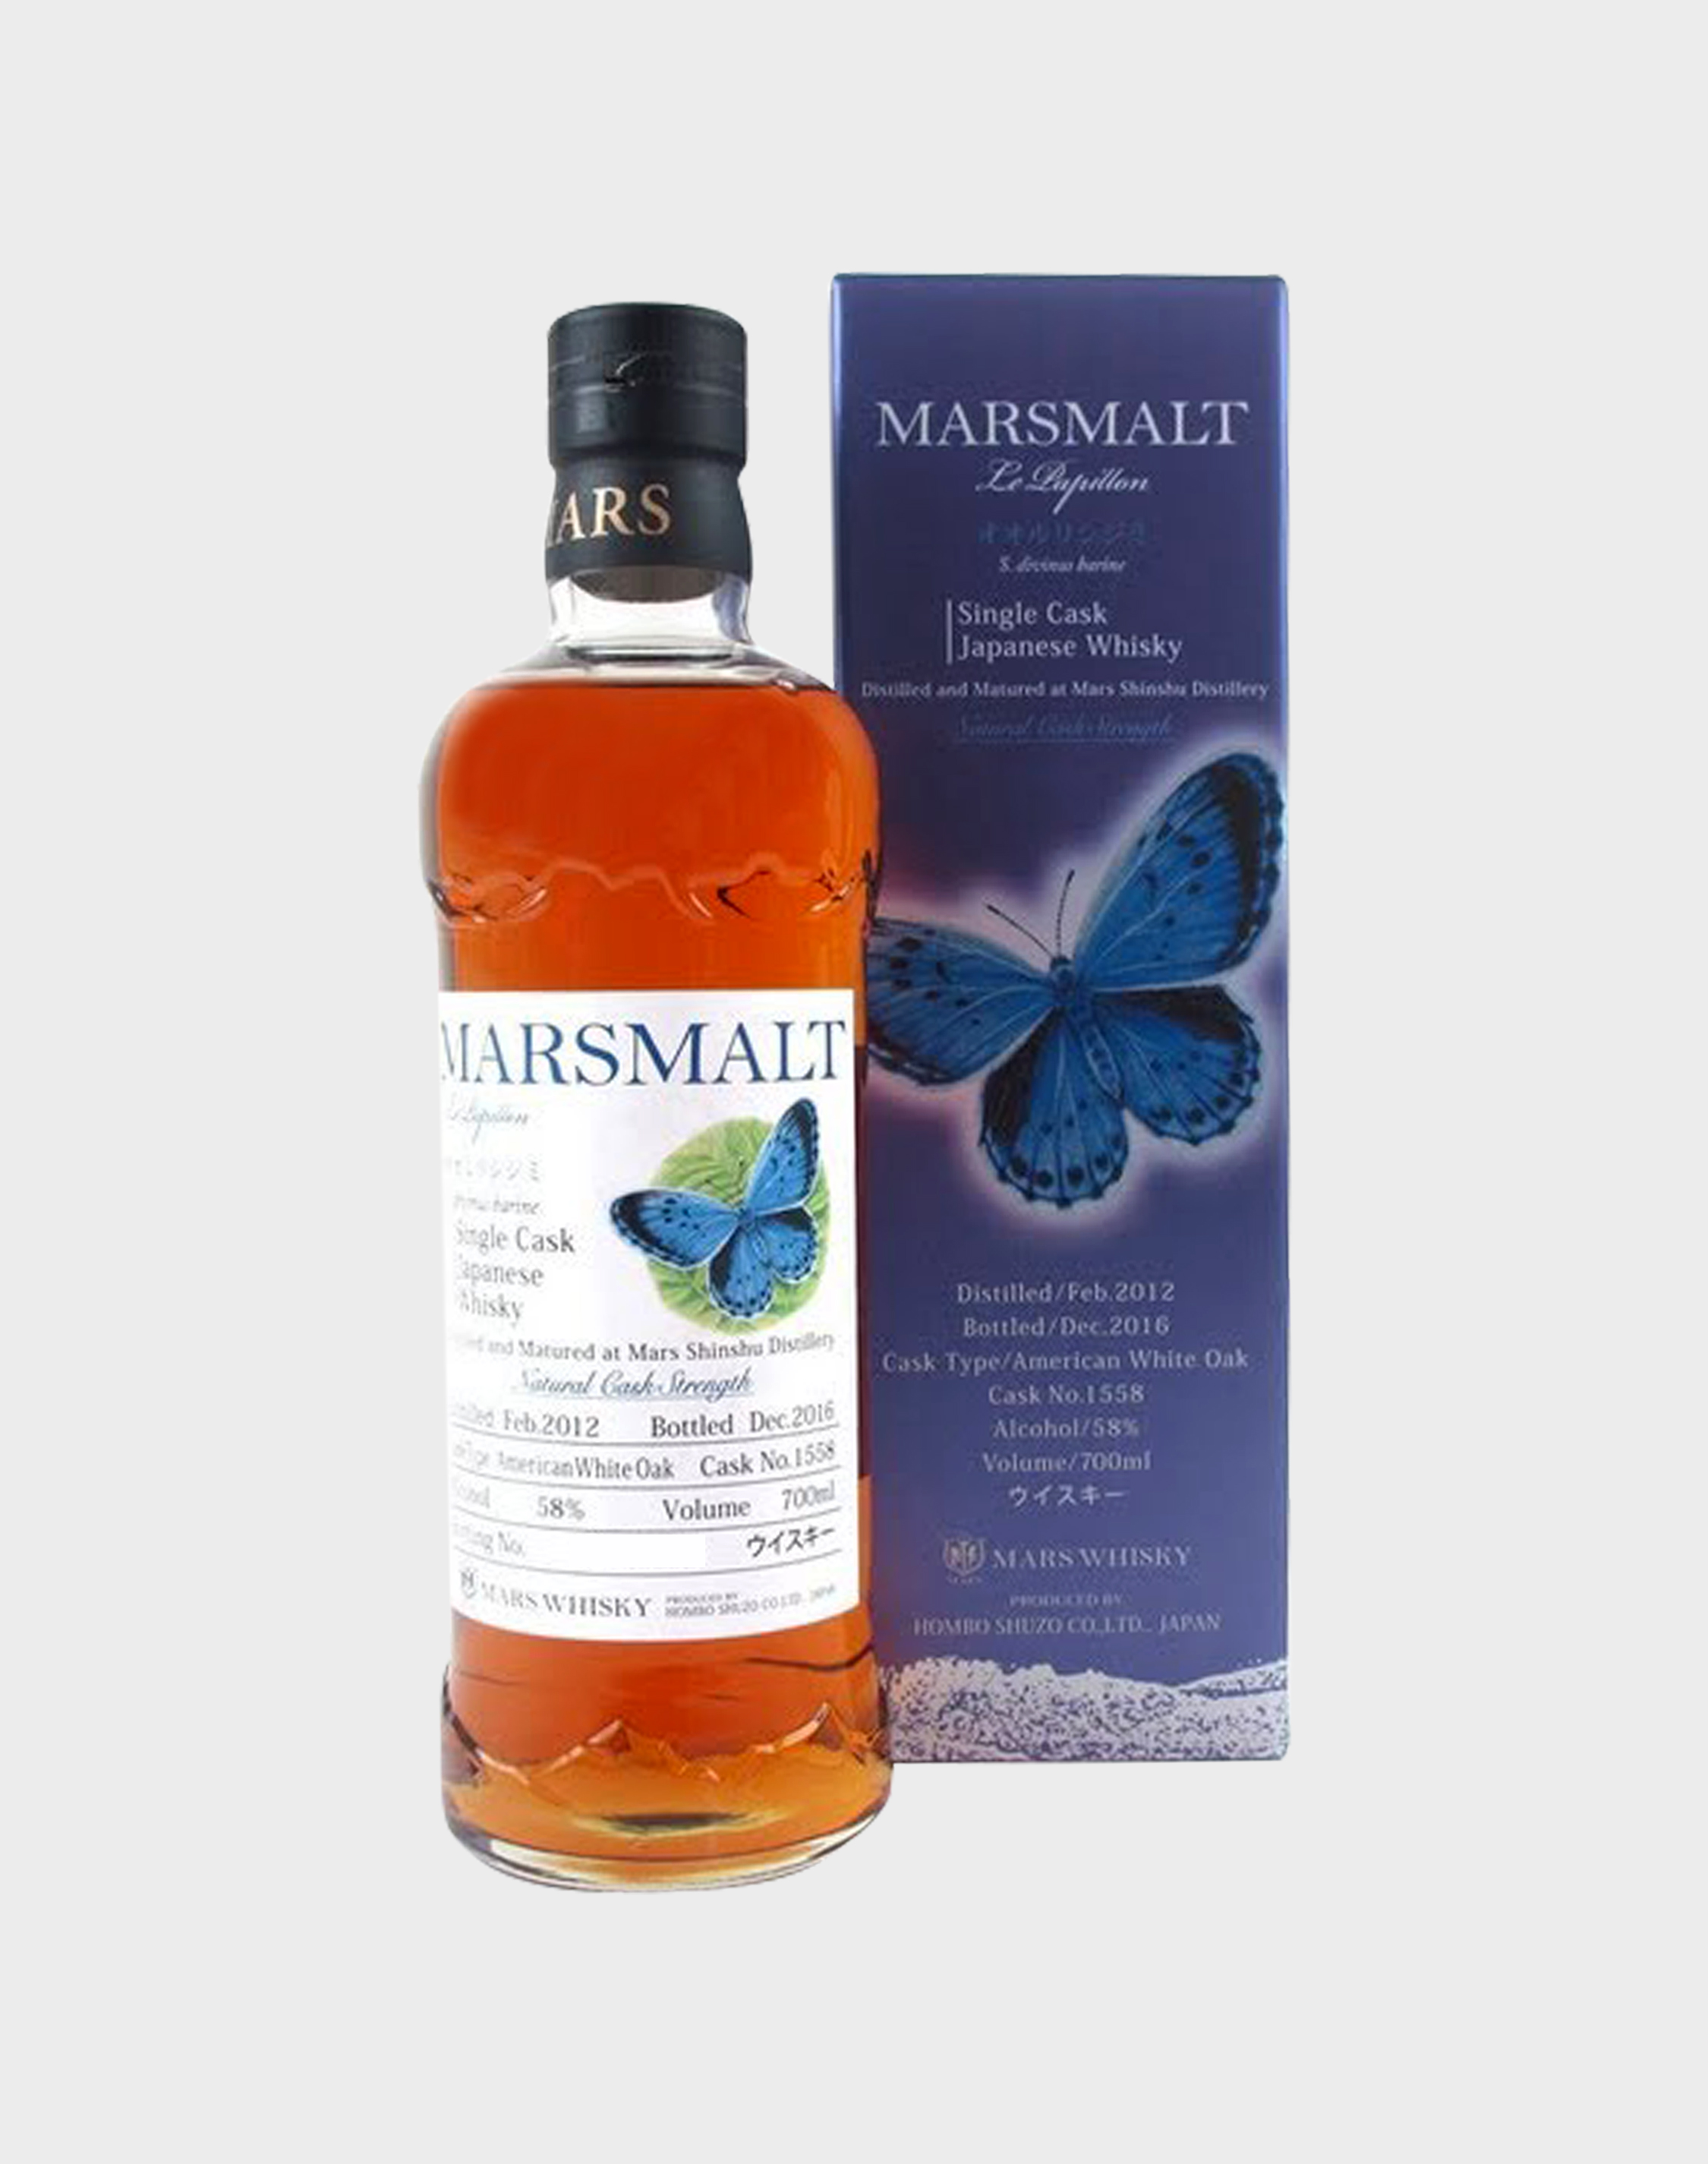 Mars Malt Le Papillon 2012 Single Cask